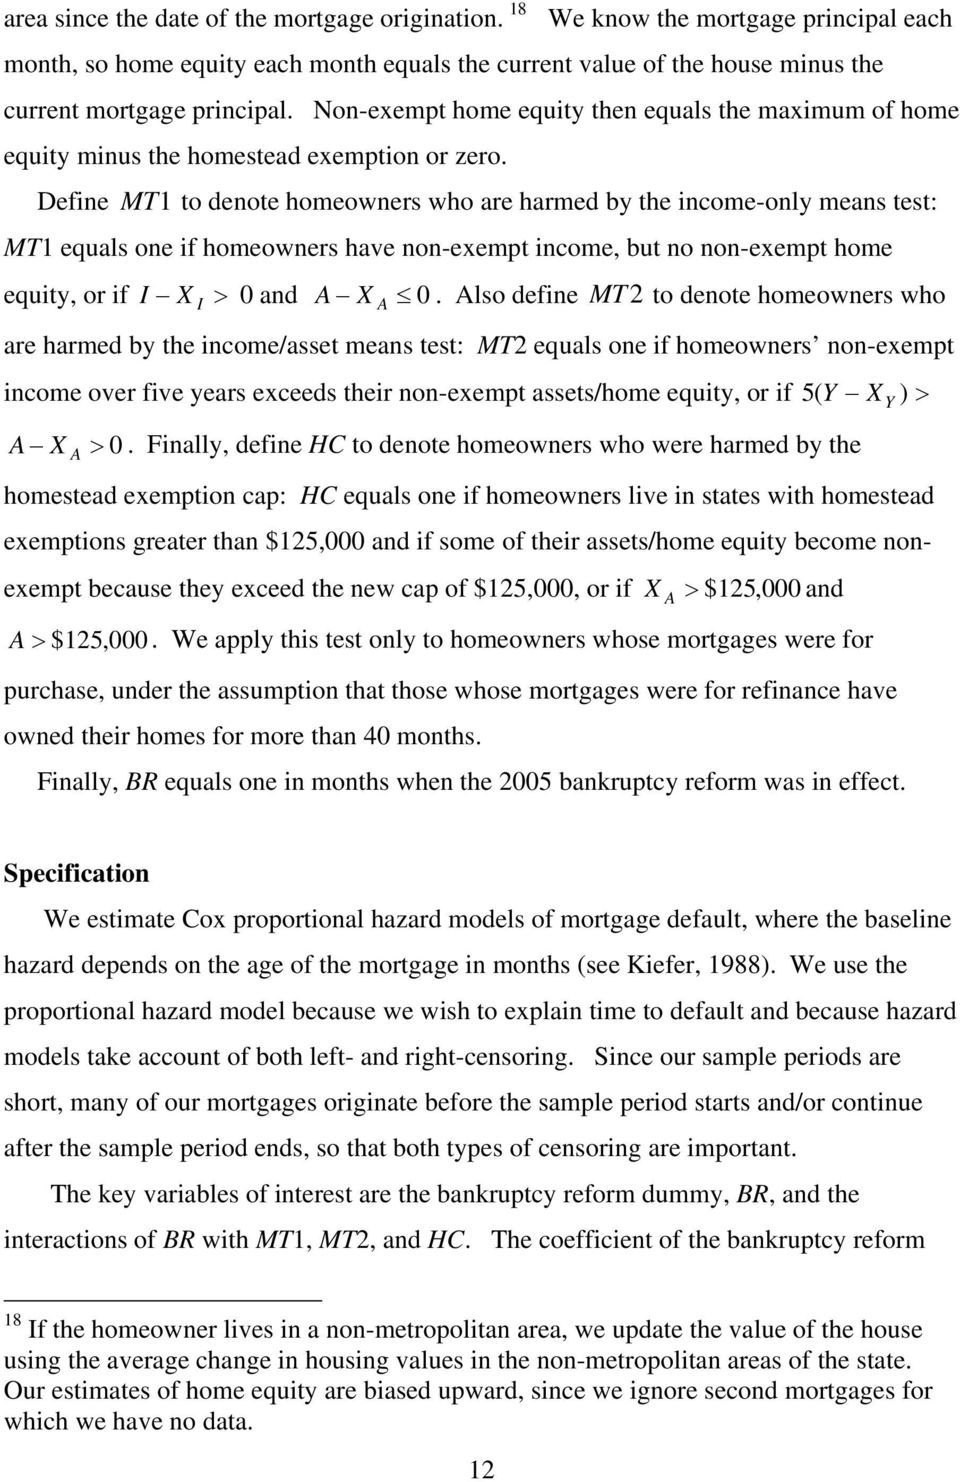 Define MT 1 to denote homeowners who are harmed by the income-only means test: MT1 equals one if homeowners have non-exempt income, but no non-exempt home equity, or if I X I > 0 and A X A 0.